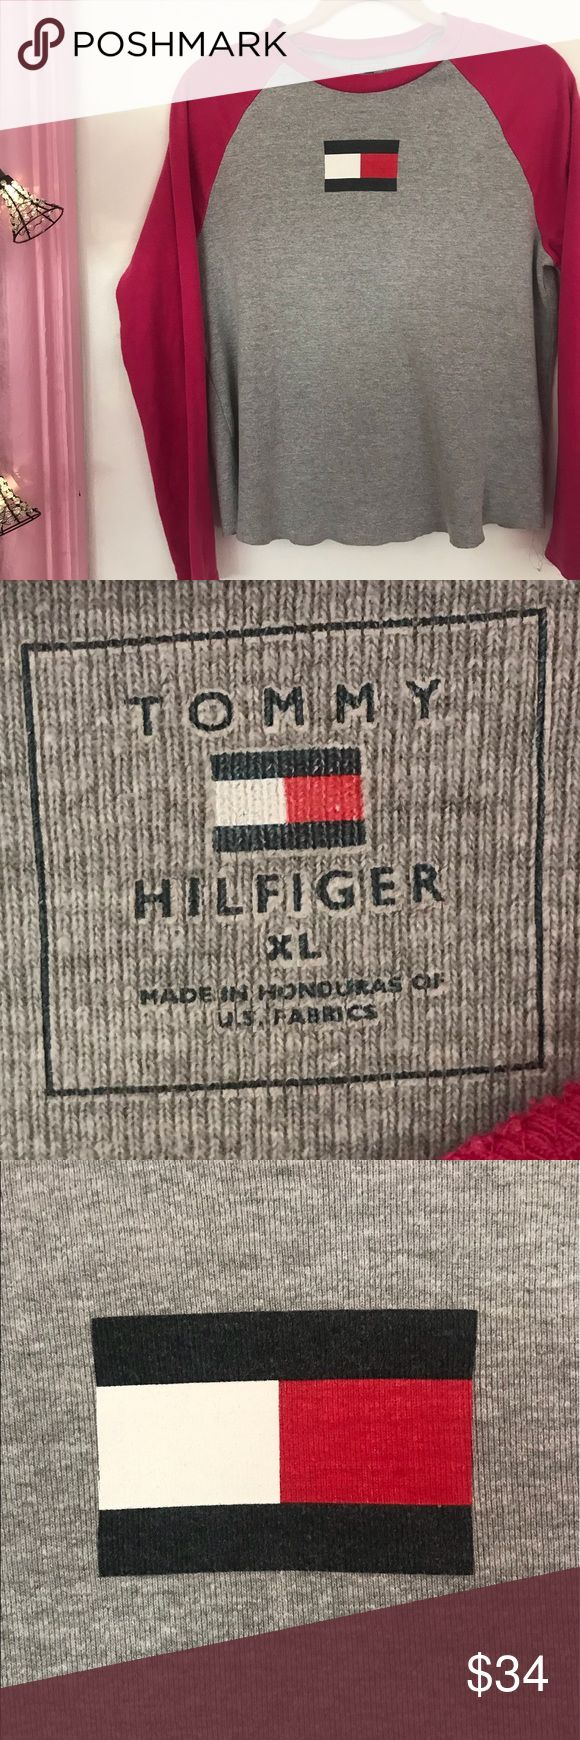 Tommy Hilfiger Flag Raglan Top Small/Medium This is a Tommy Hilfiger Flag raglan and fits as a small/medium. Tag reads XL puts fits smaller. Very cute with the Tommy Hilfiger Flag on the front and looks great tucked into a pair of jeans. Bundle up! Tommy Hilfiger Tops